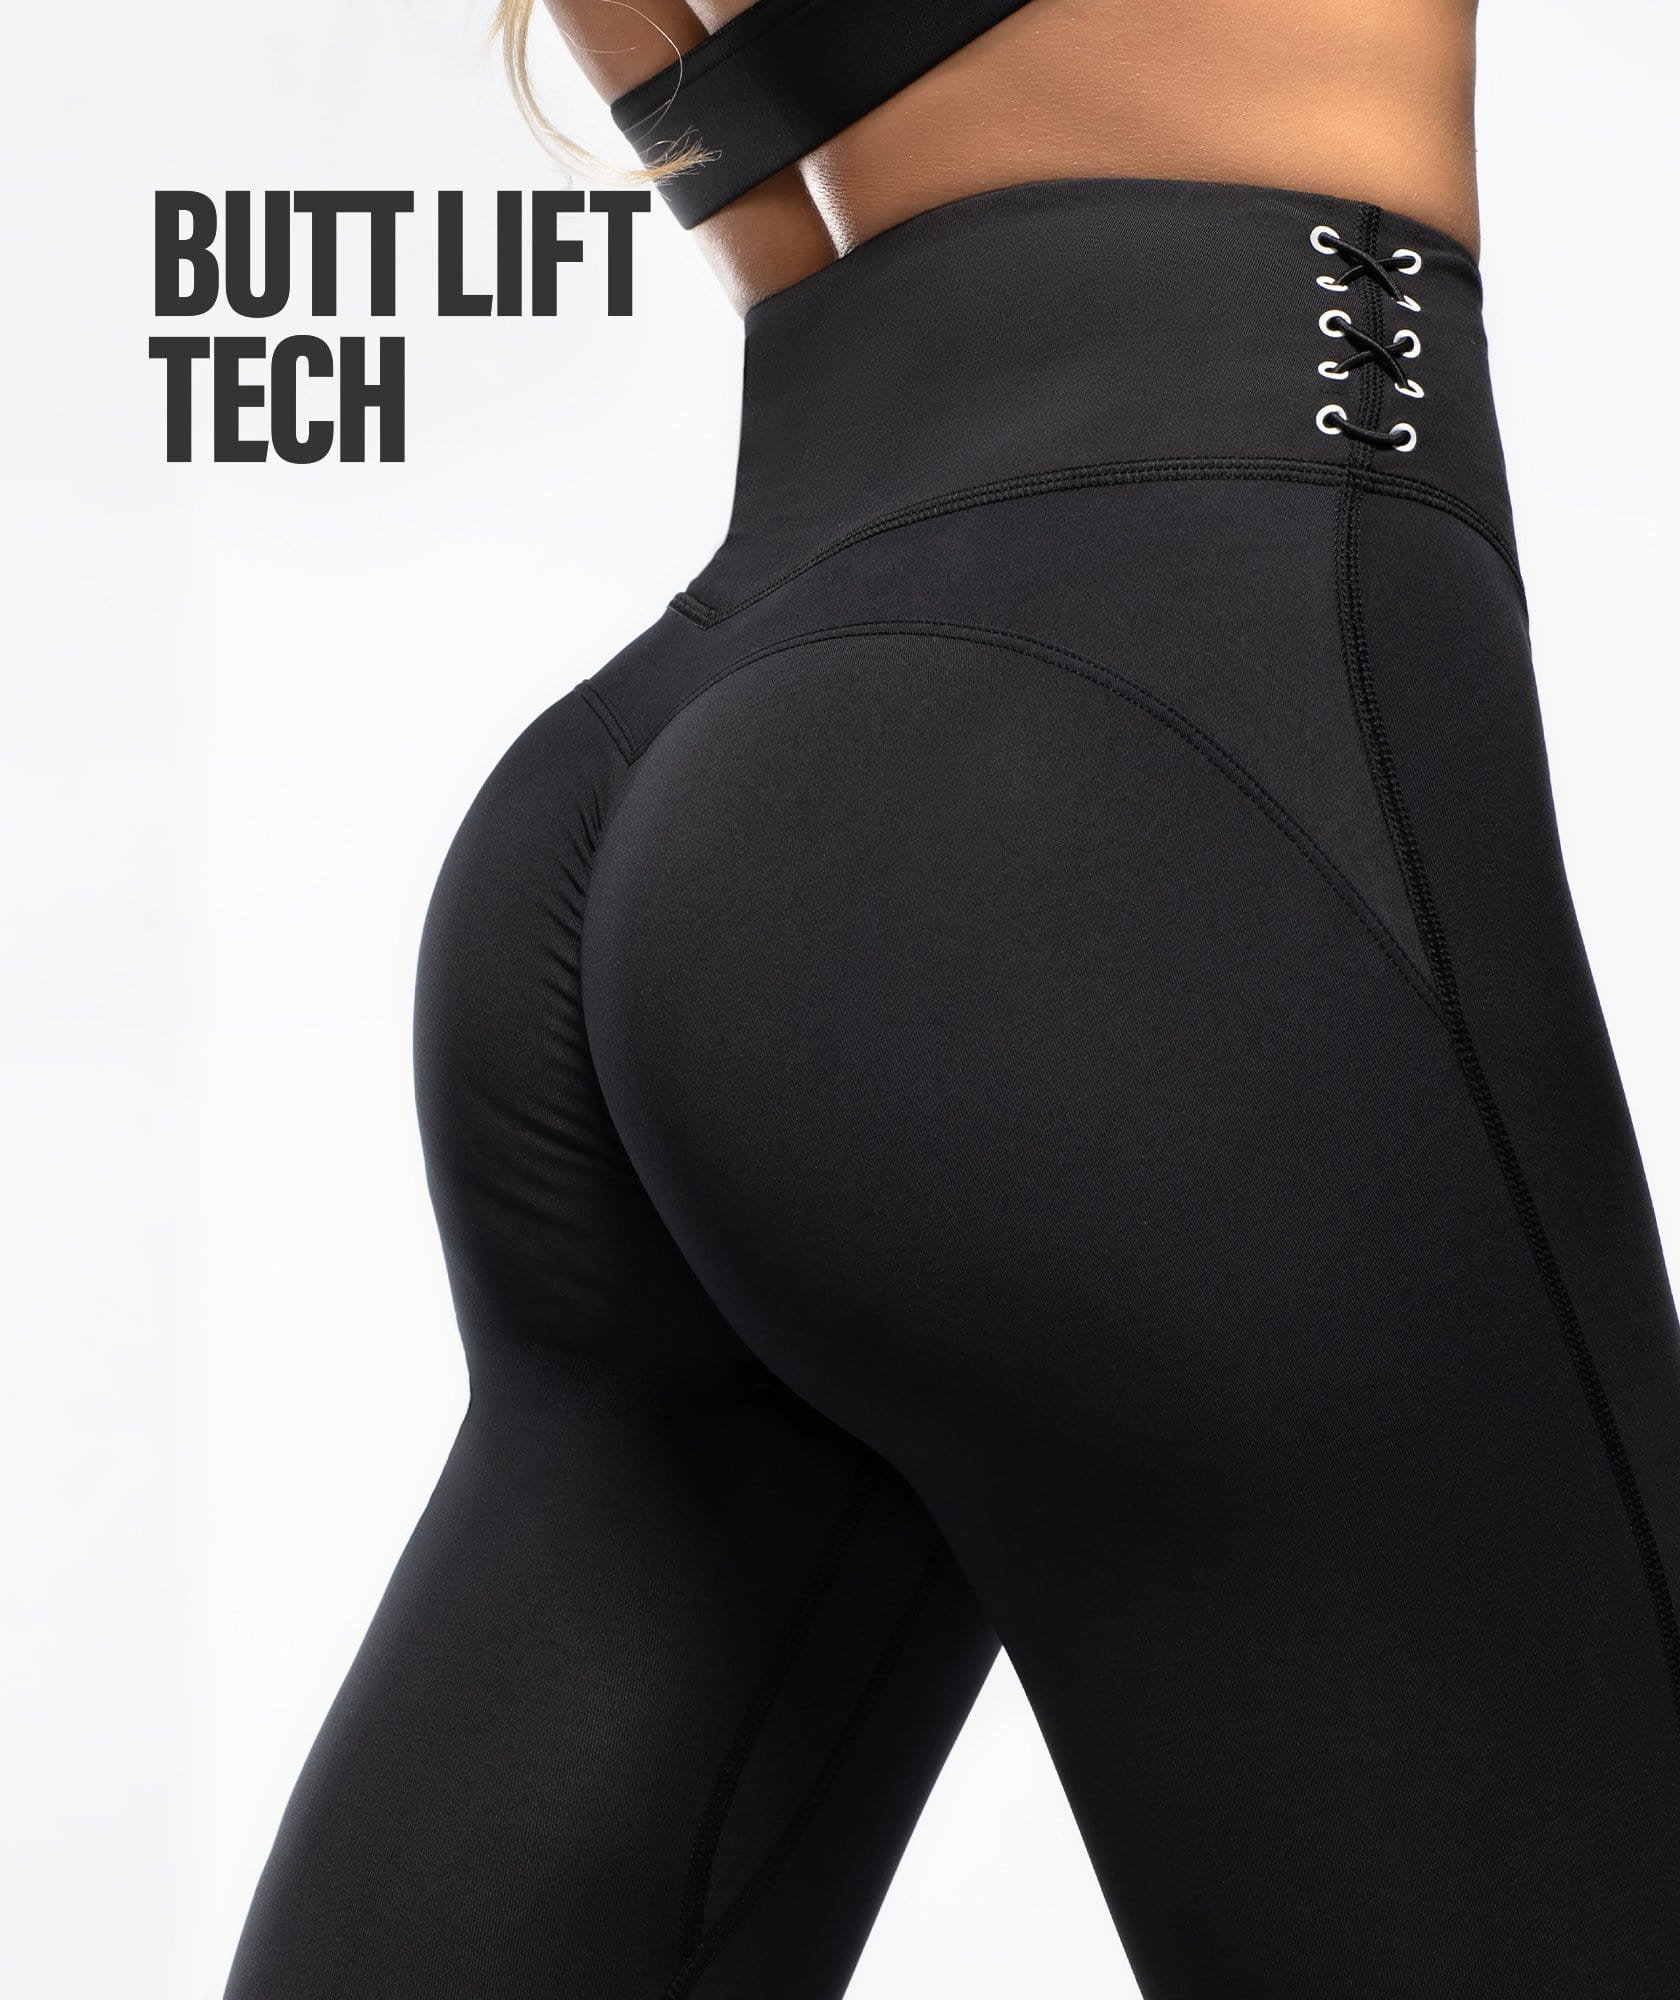 Honeypeach Cropped Leggings - Black - Firm Abs Fitness